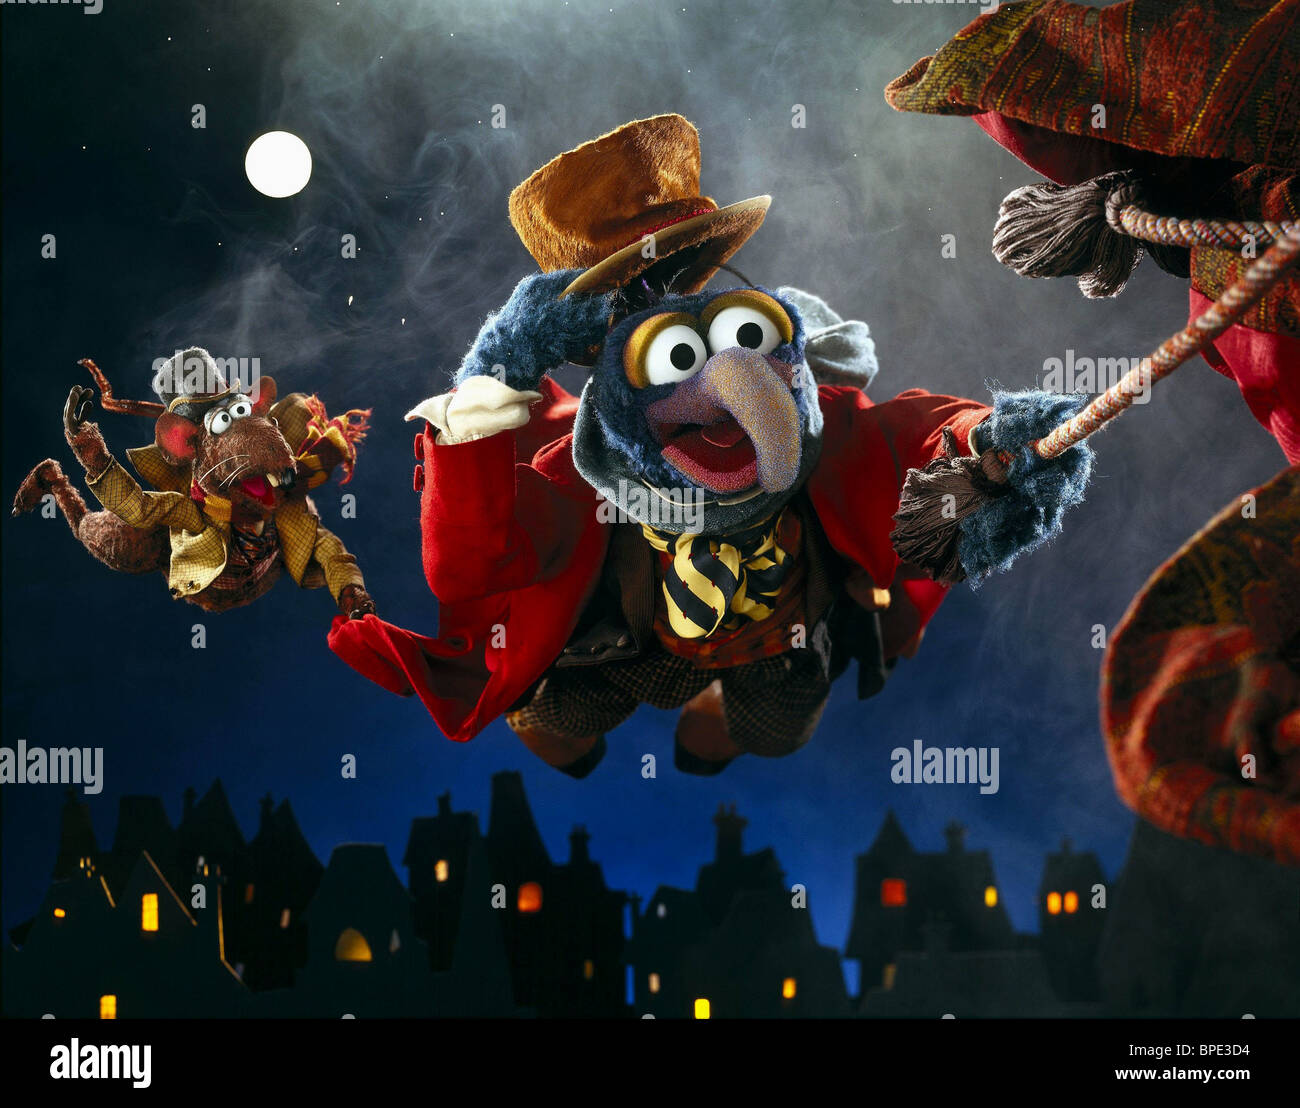 The Muppet Christmas Carol: Gonzo Muppet Stock Photos & Gonzo Muppet Stock Images